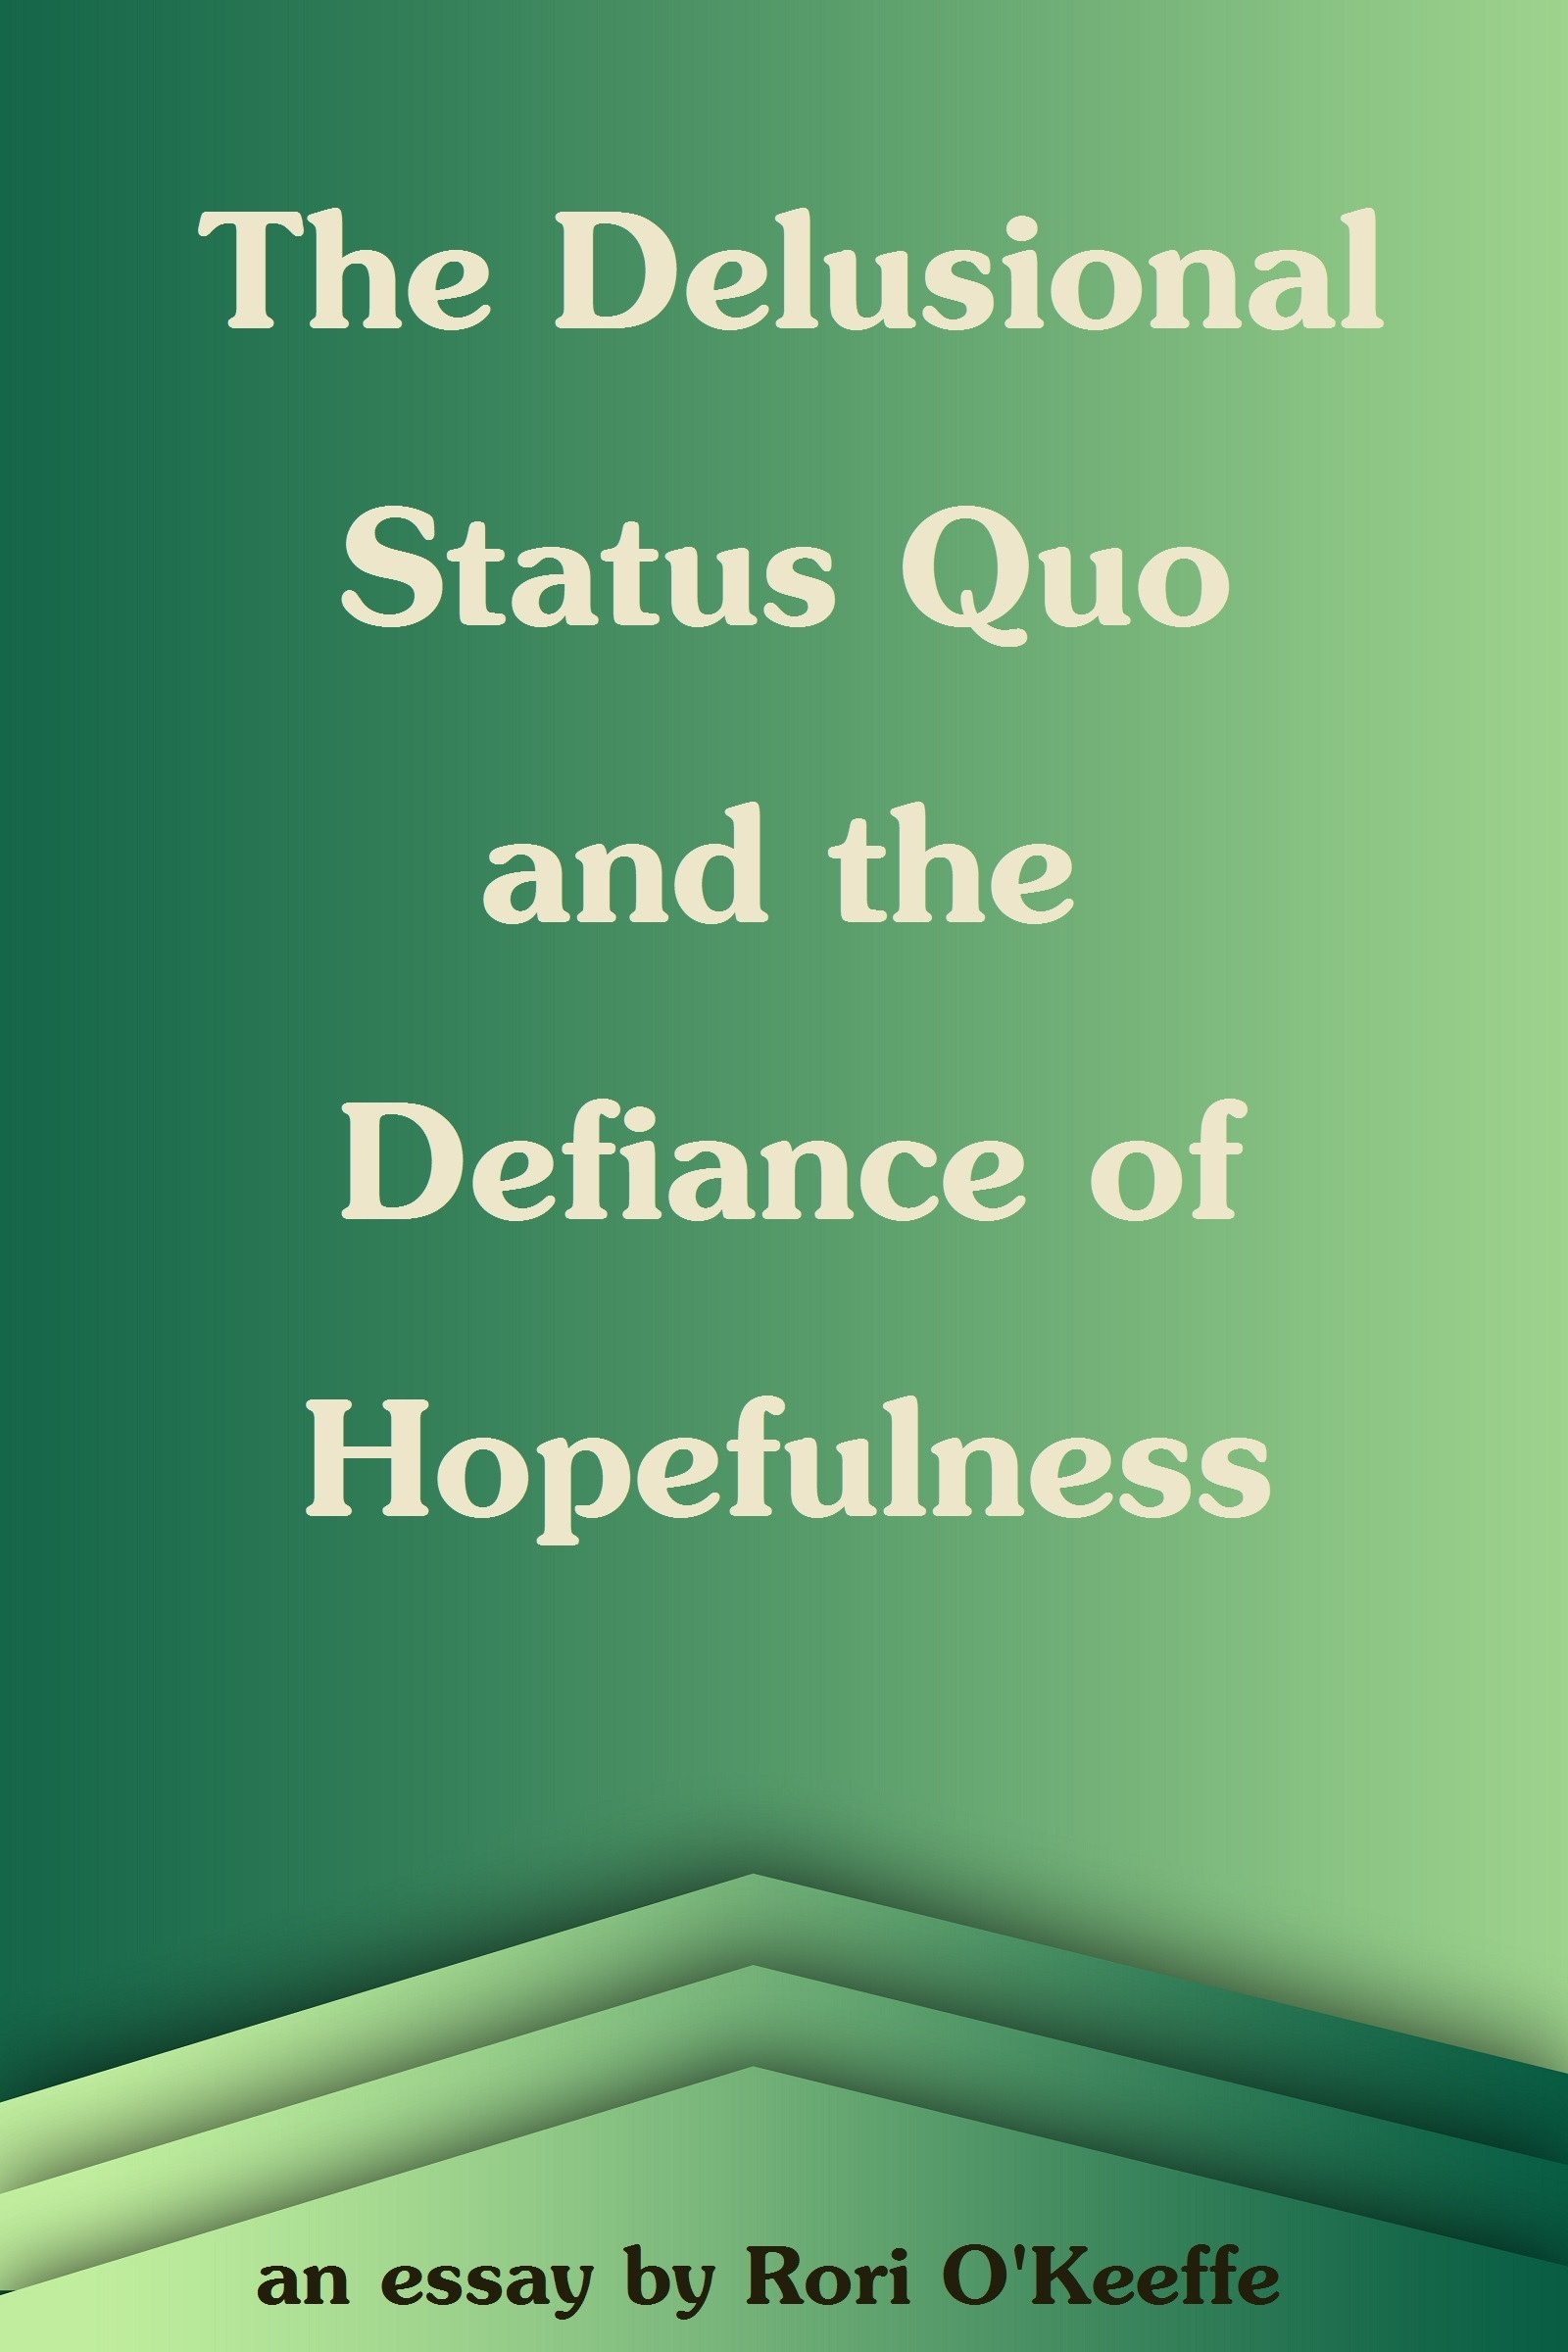 The Delusional Status Quo and the Defiance of Hopefulness  by  Rori OKeeffe